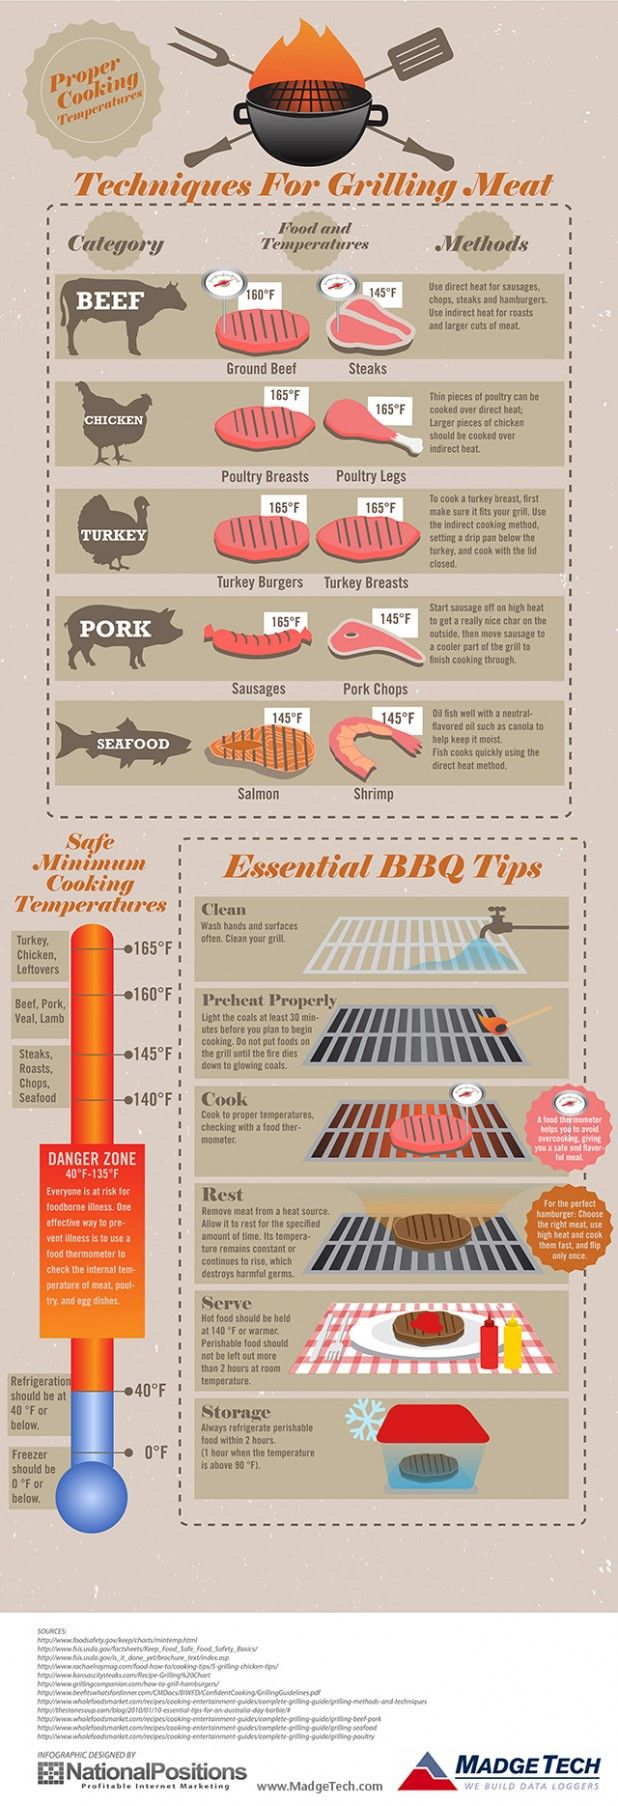 Food Facts For A Safe BBQ